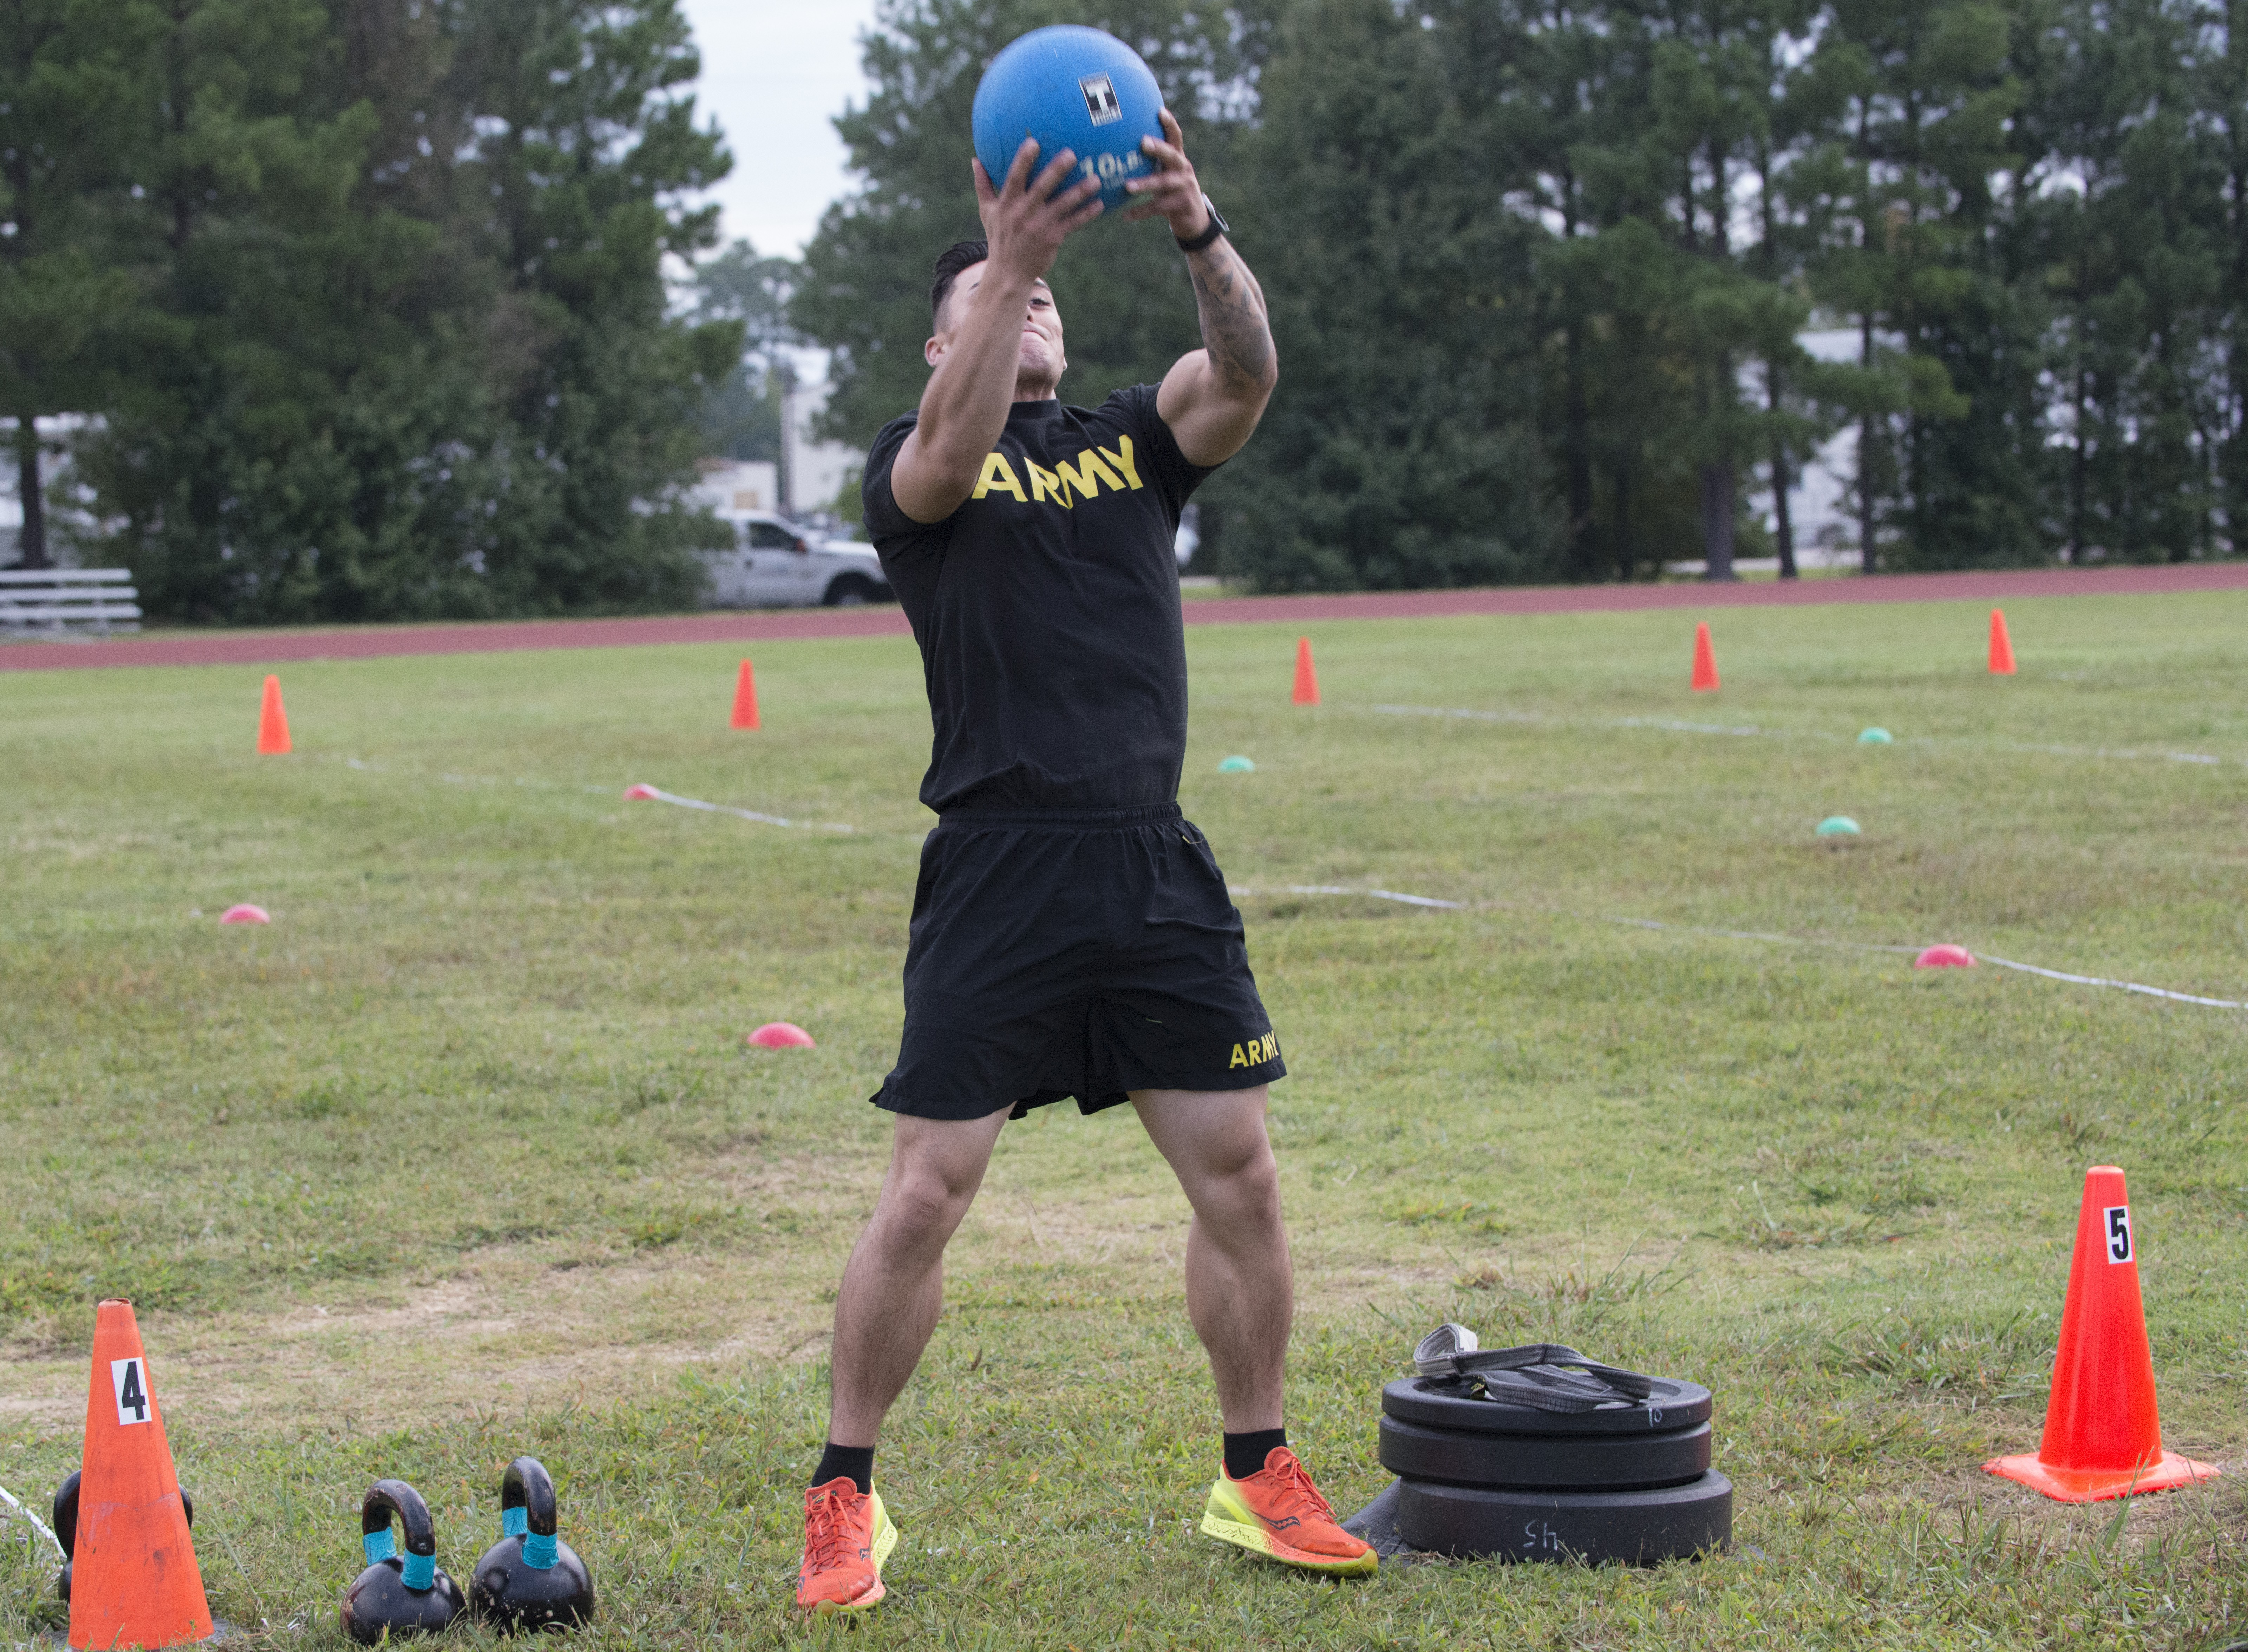 physical fitness readiness The department of defense (dod) considers physical fitness an important component of the ''general health and well-being and readiness of military troops (dodd 13081, 1981) and defines physical fitness as including cardiorespiratory endurance, muscular strength and endurance, and whole-body.